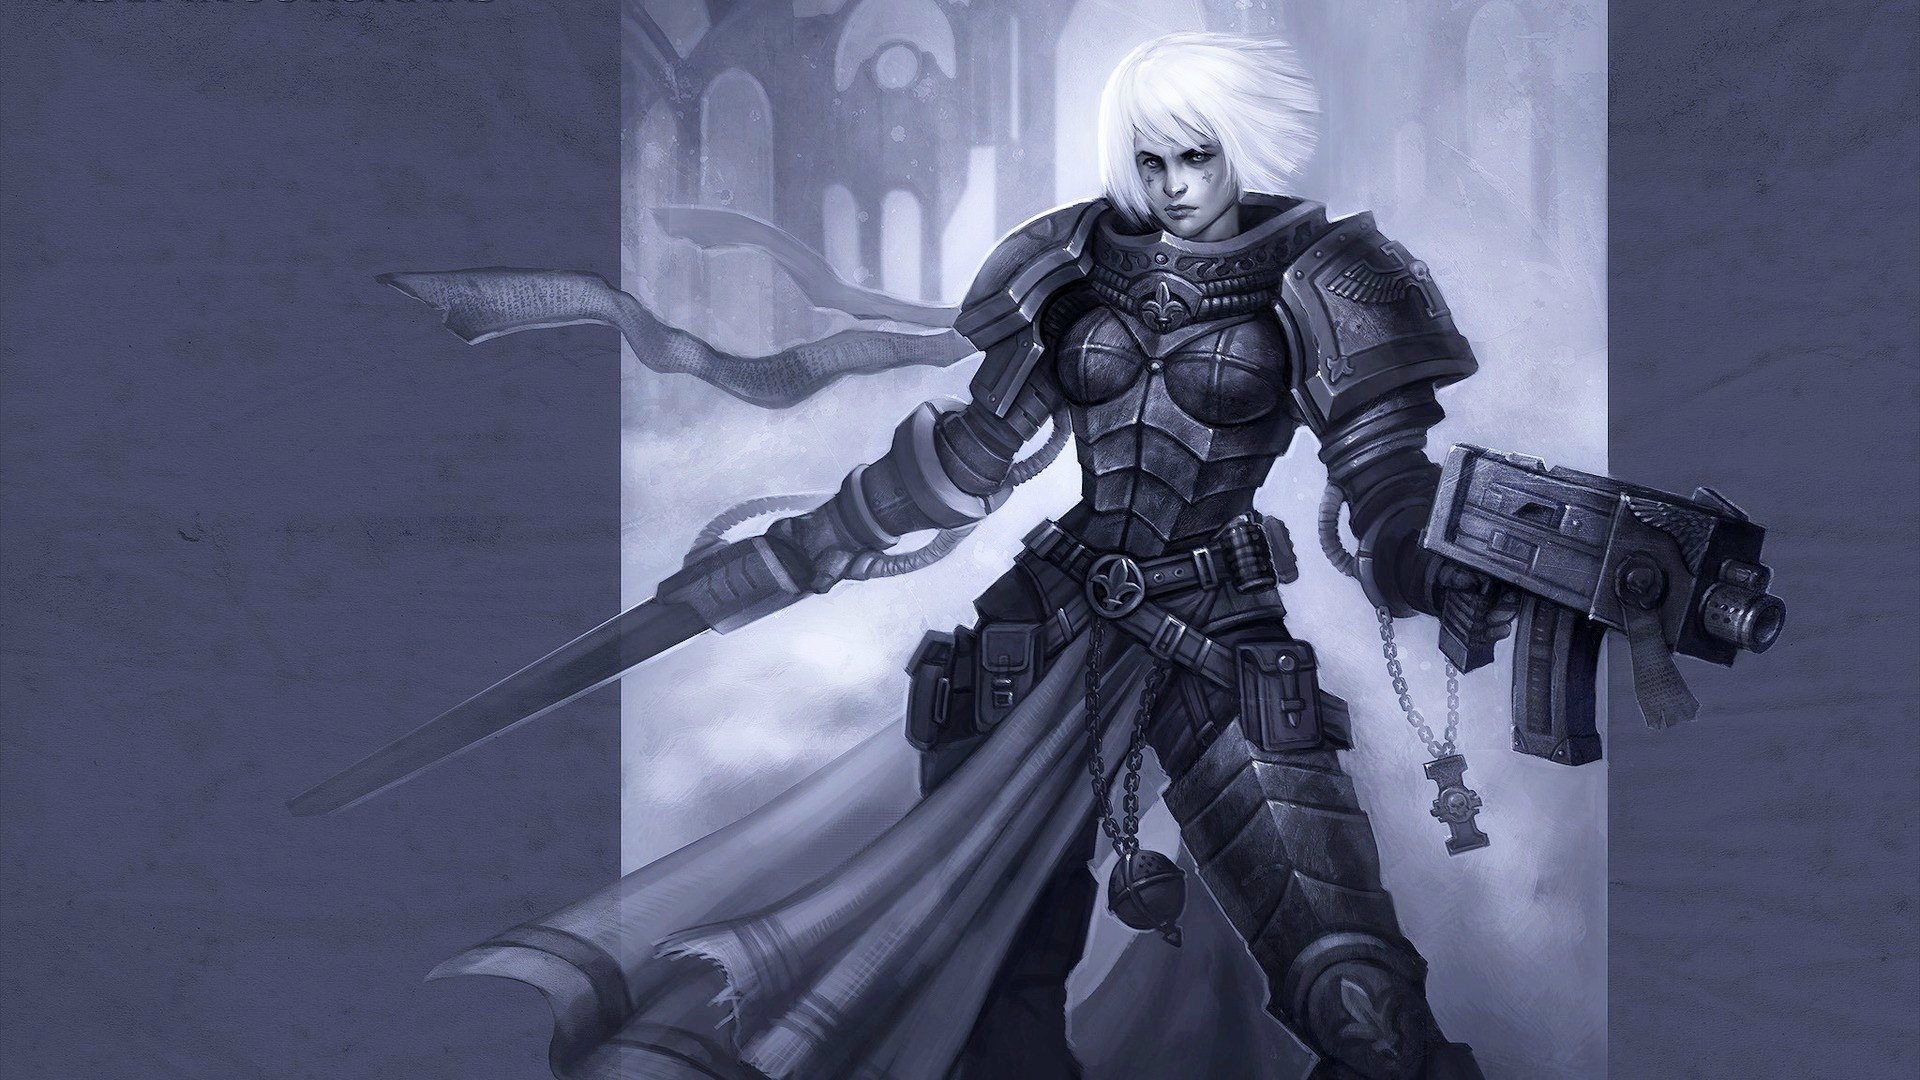 Those two have always seemed rather overpowered, although the Grey Knights  need to be,